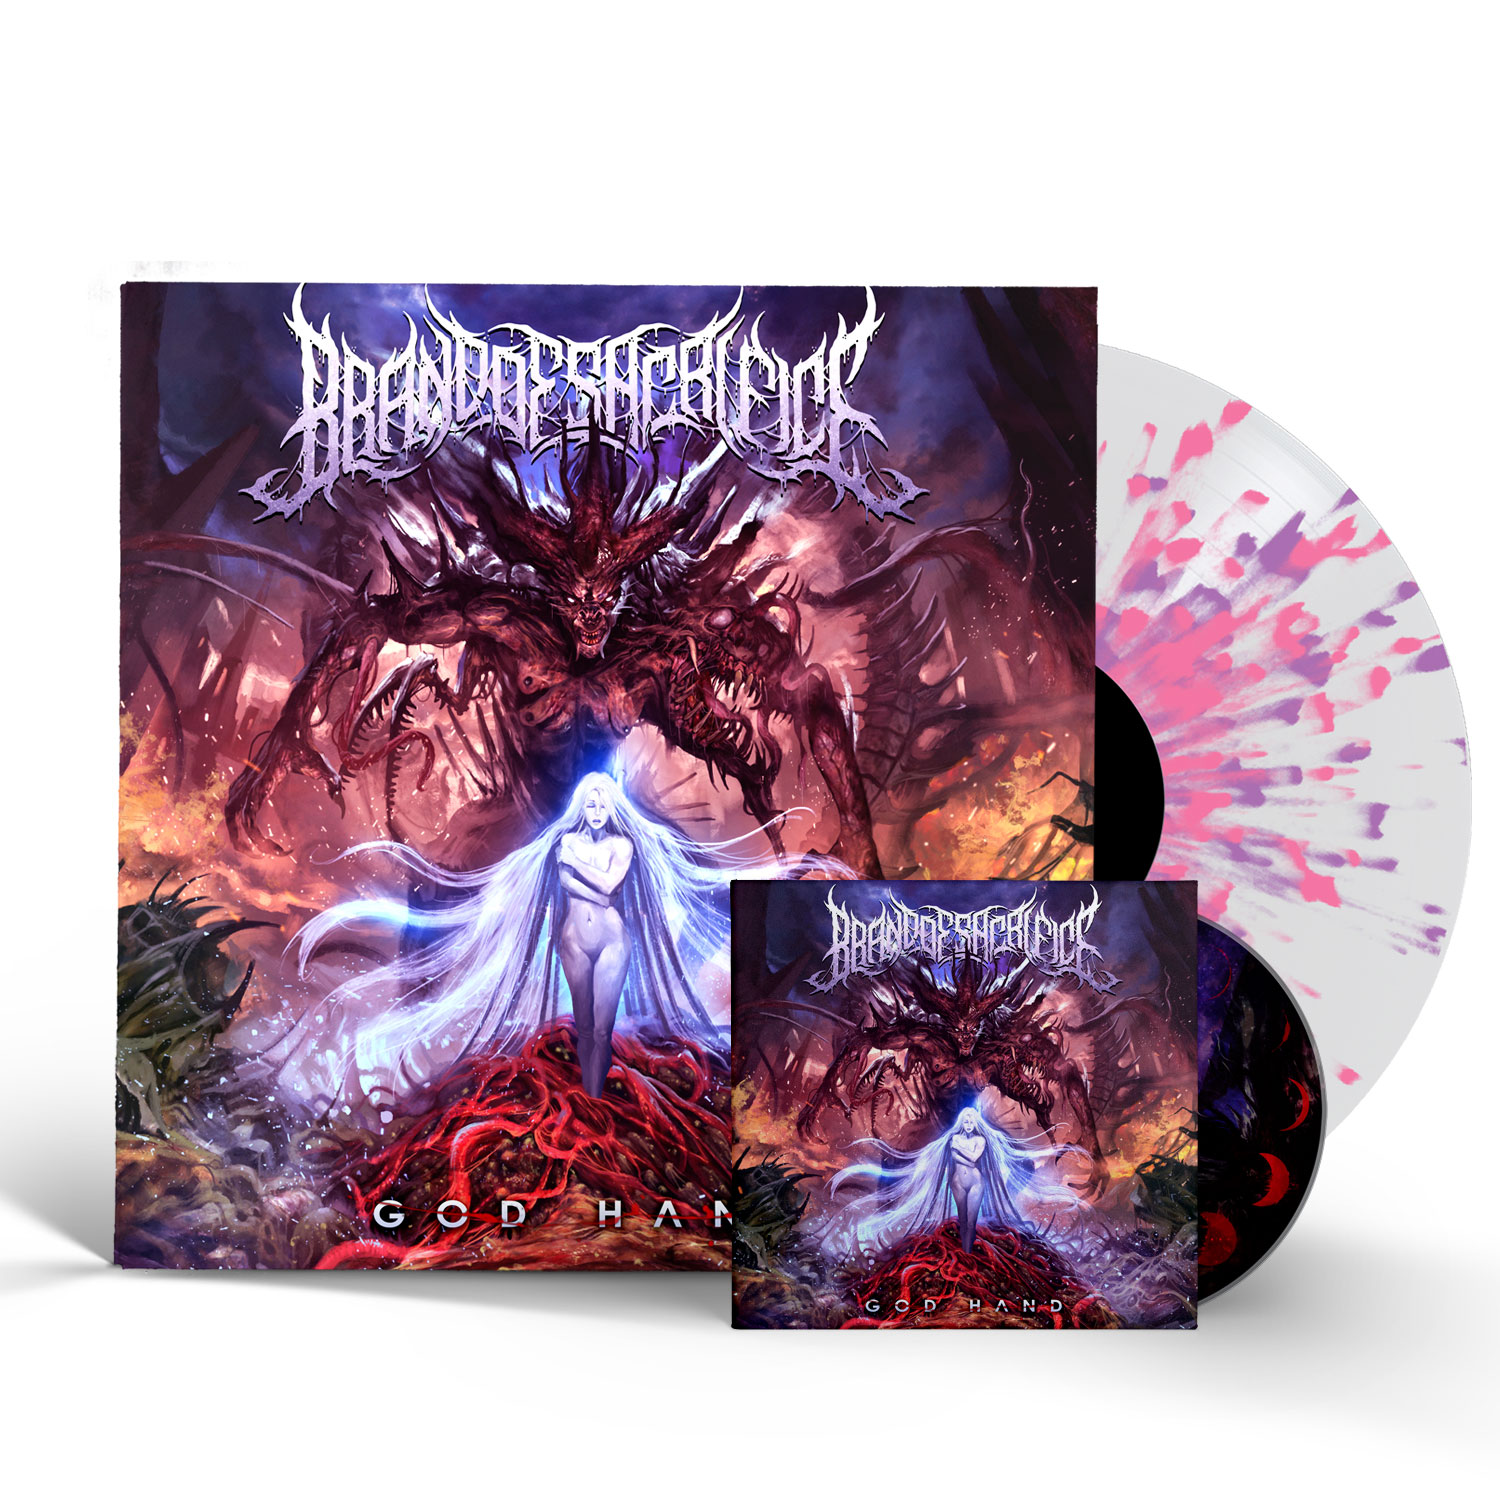 Godhand CD + LP Bundle